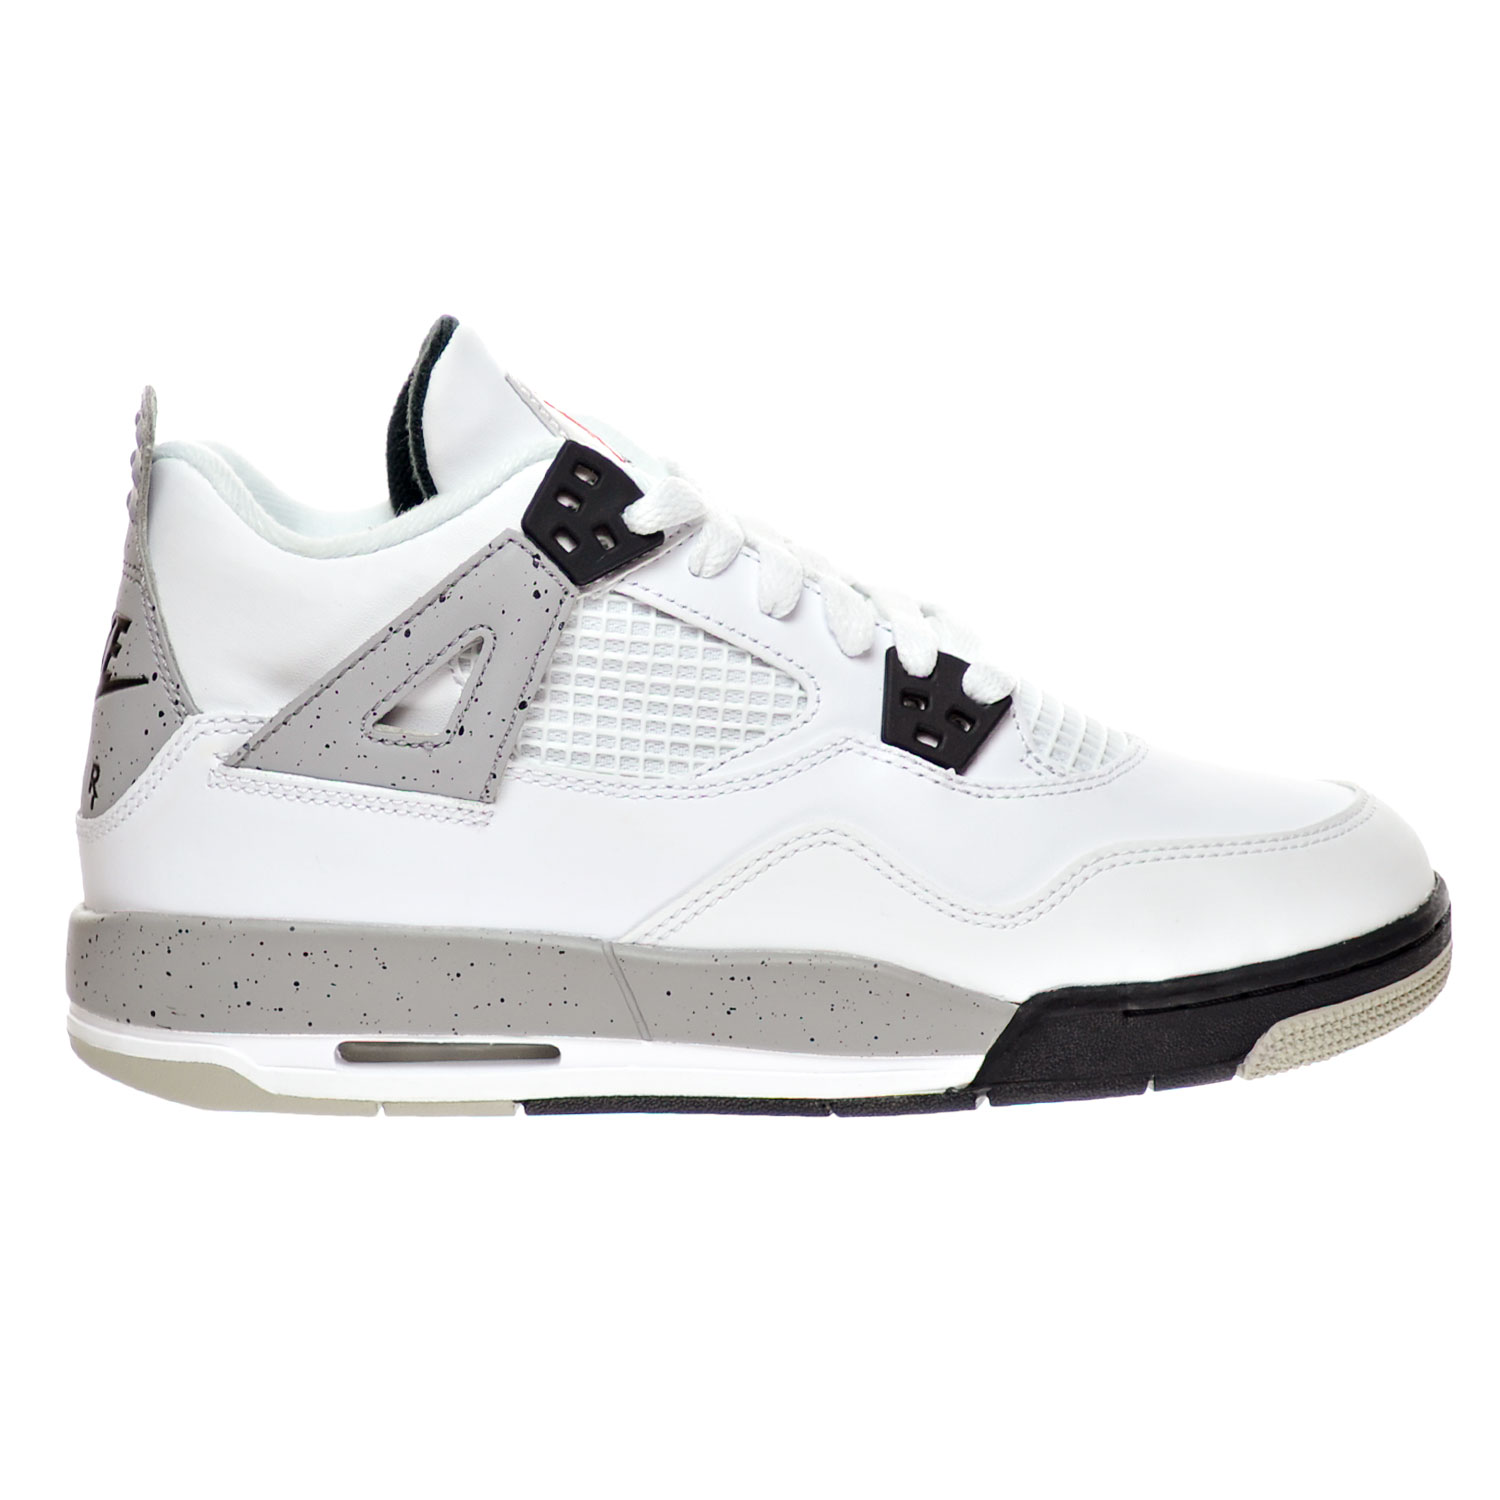 c458e049cc9f Details about Air Jordan 4 Retro OG BG